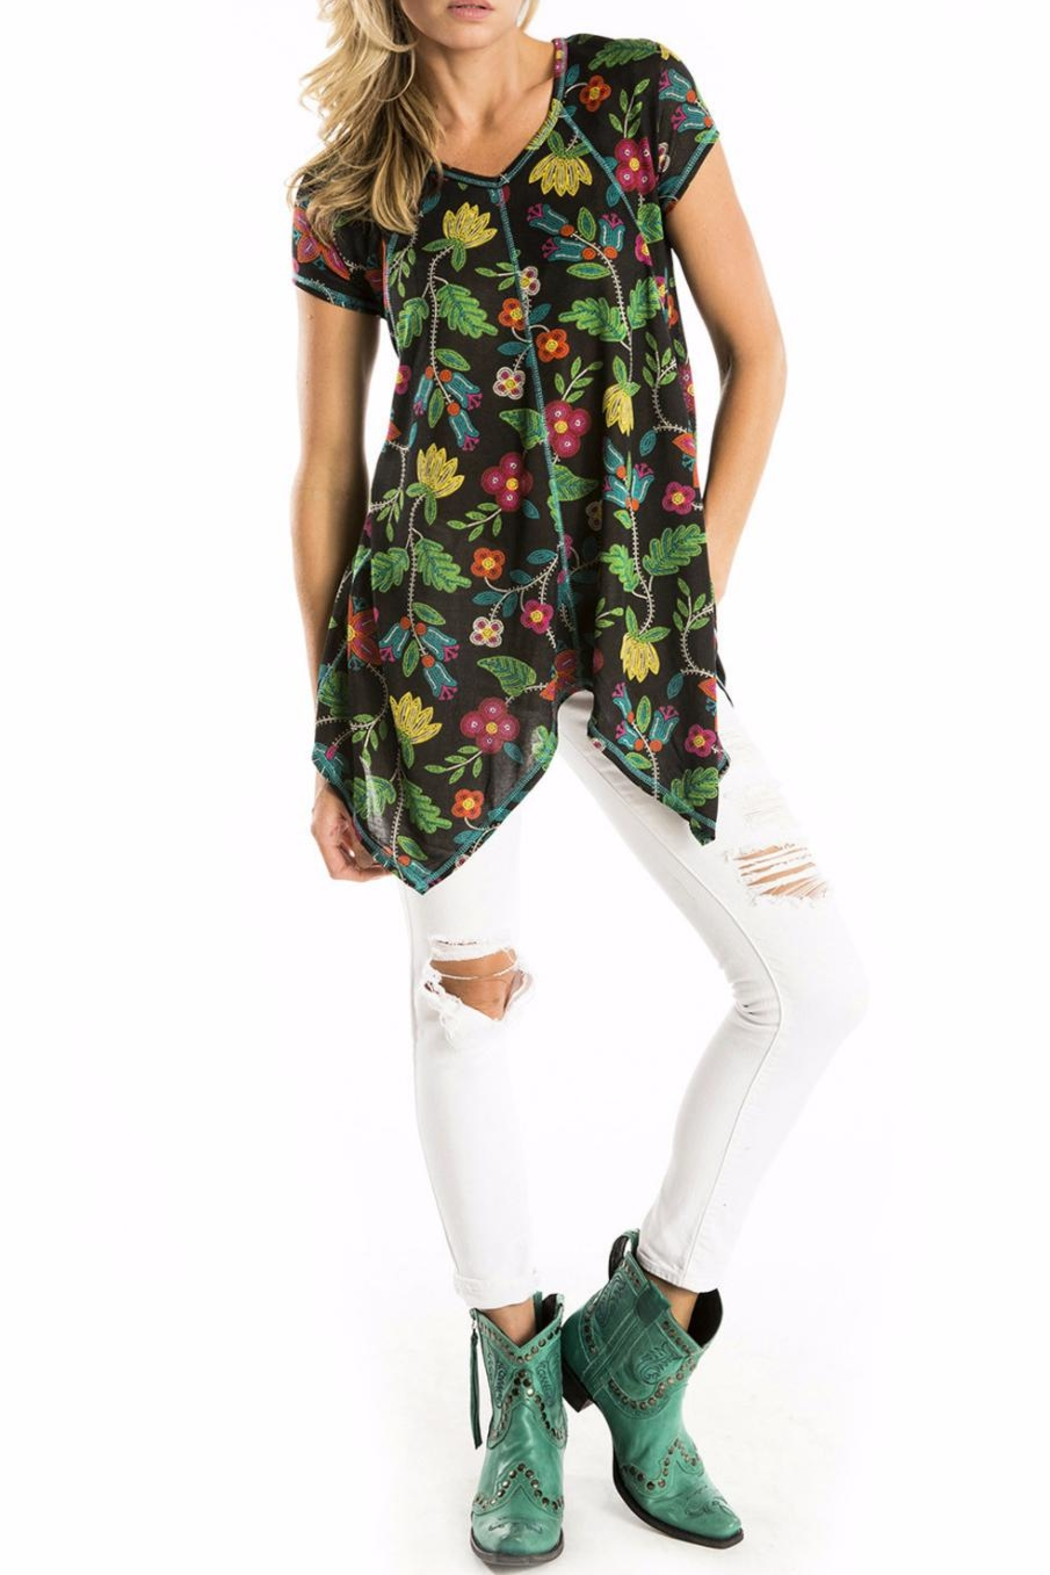 Double D Ranchwear Floral Tunic - Main Image